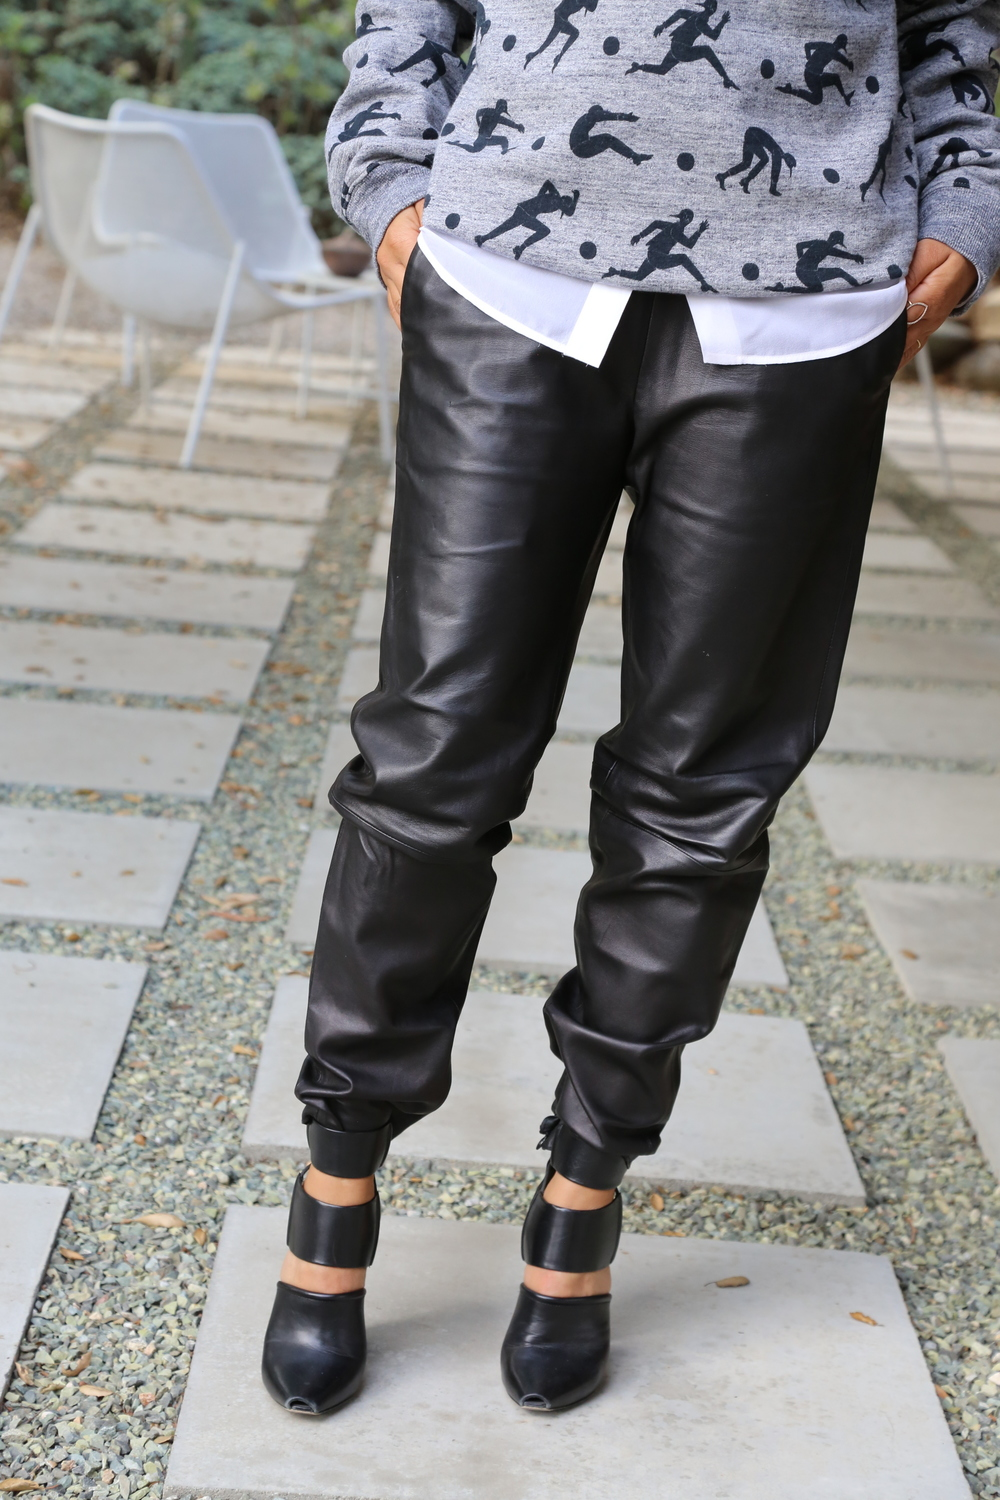 vince-leather-jogging-pants-alexander-wang-heels-los-angeles.jpg